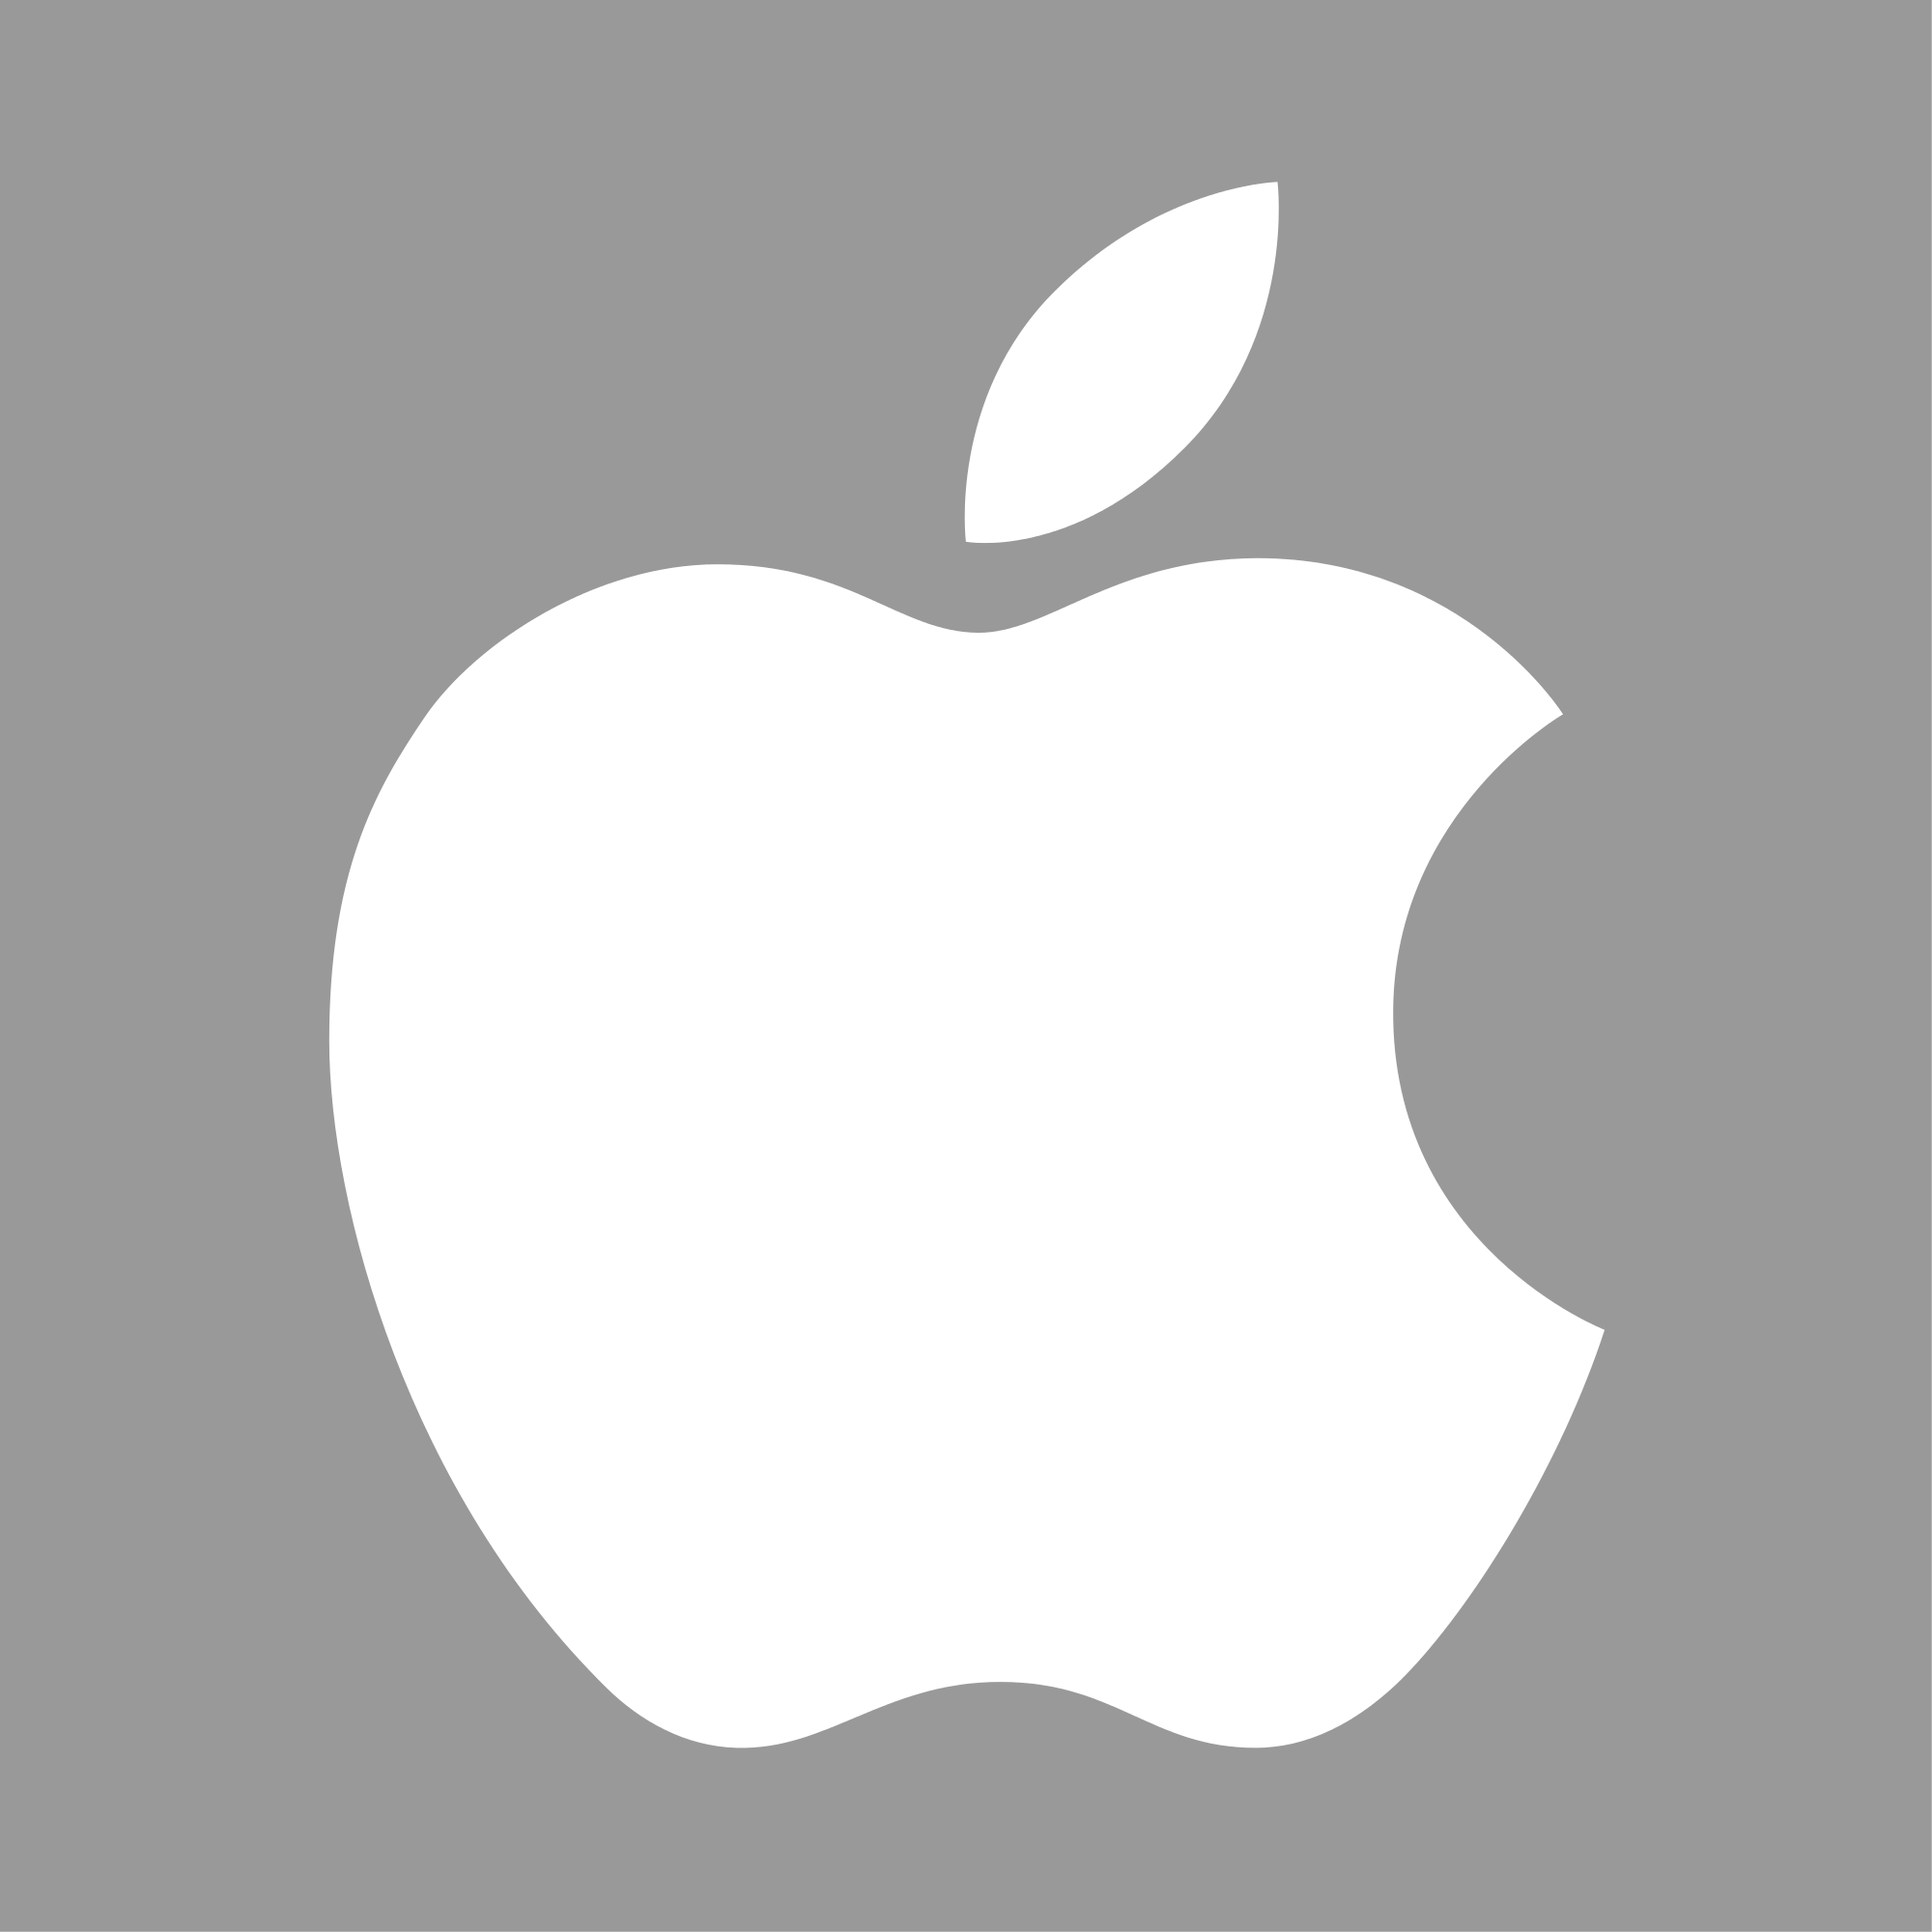 Apple svg #15, Download drawings